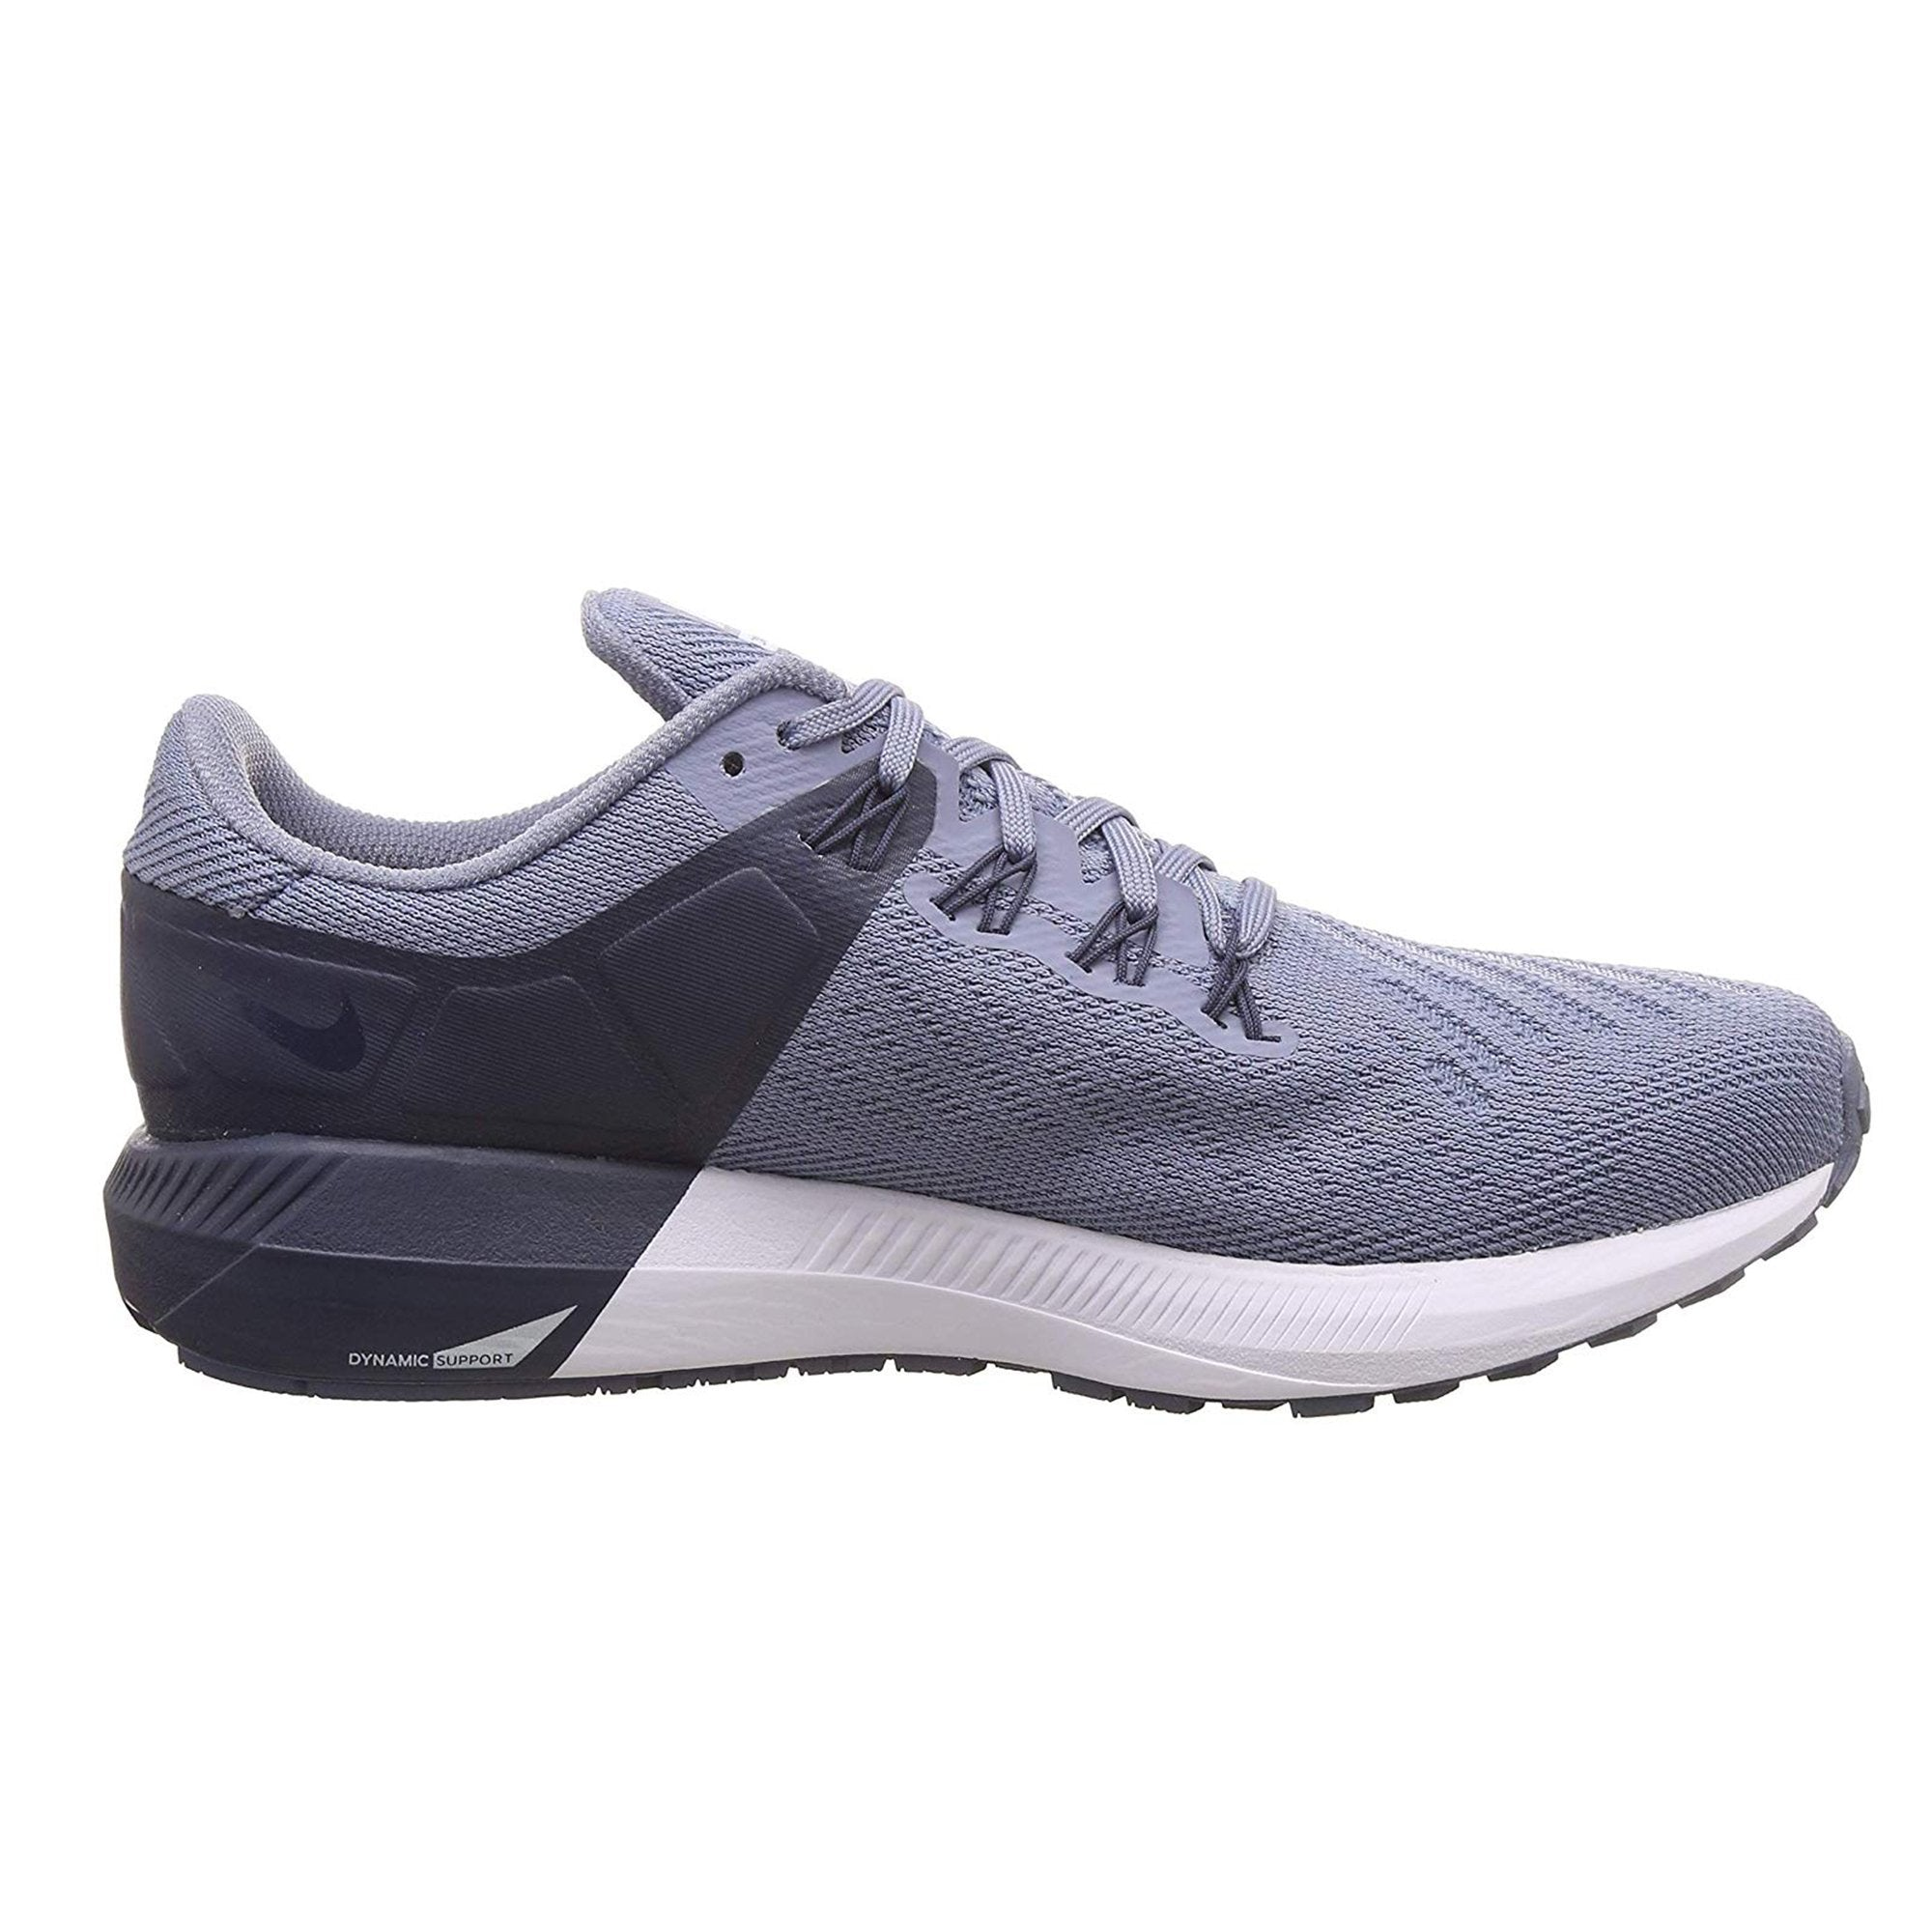 Nike Air Zoom Structure 22 Shoes - Men Nike